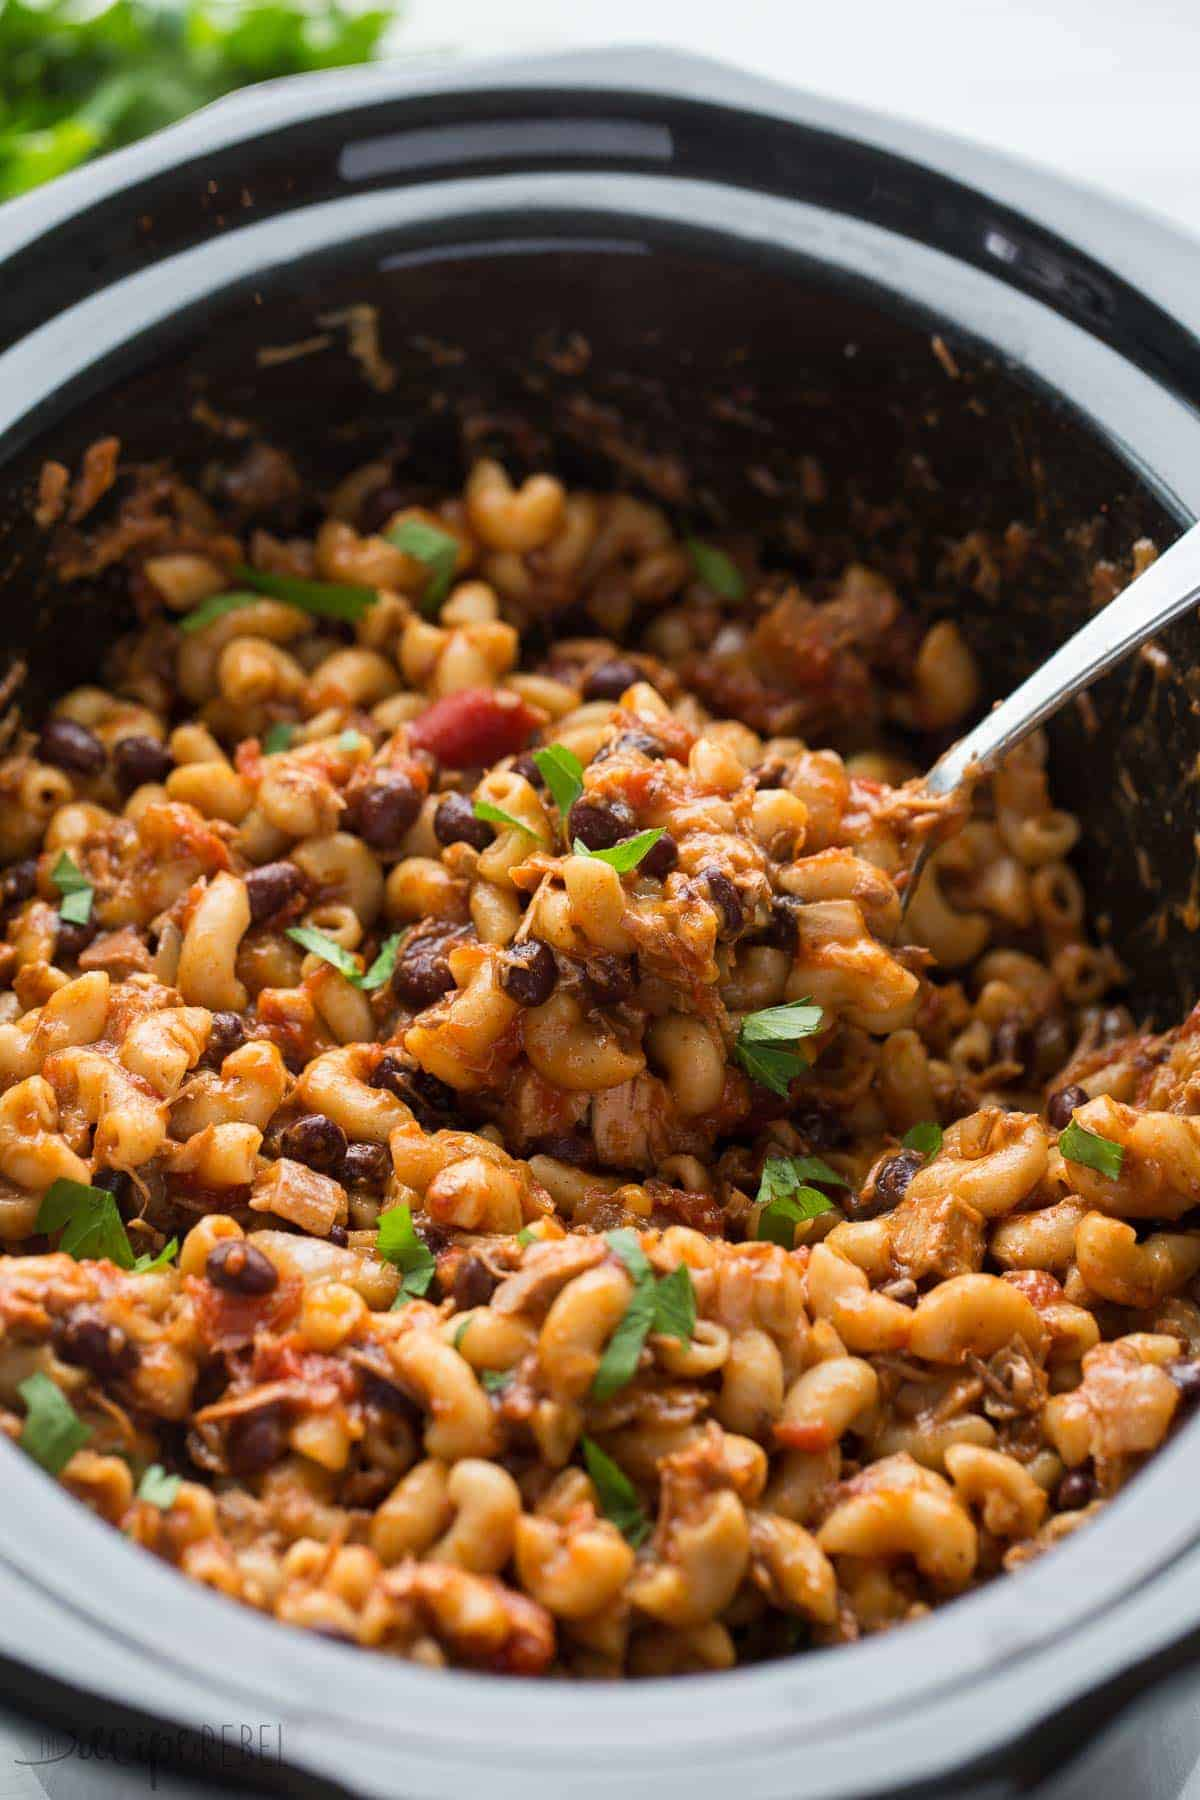 metal spoon scooping bbq chicken chili mac from black slow cooker